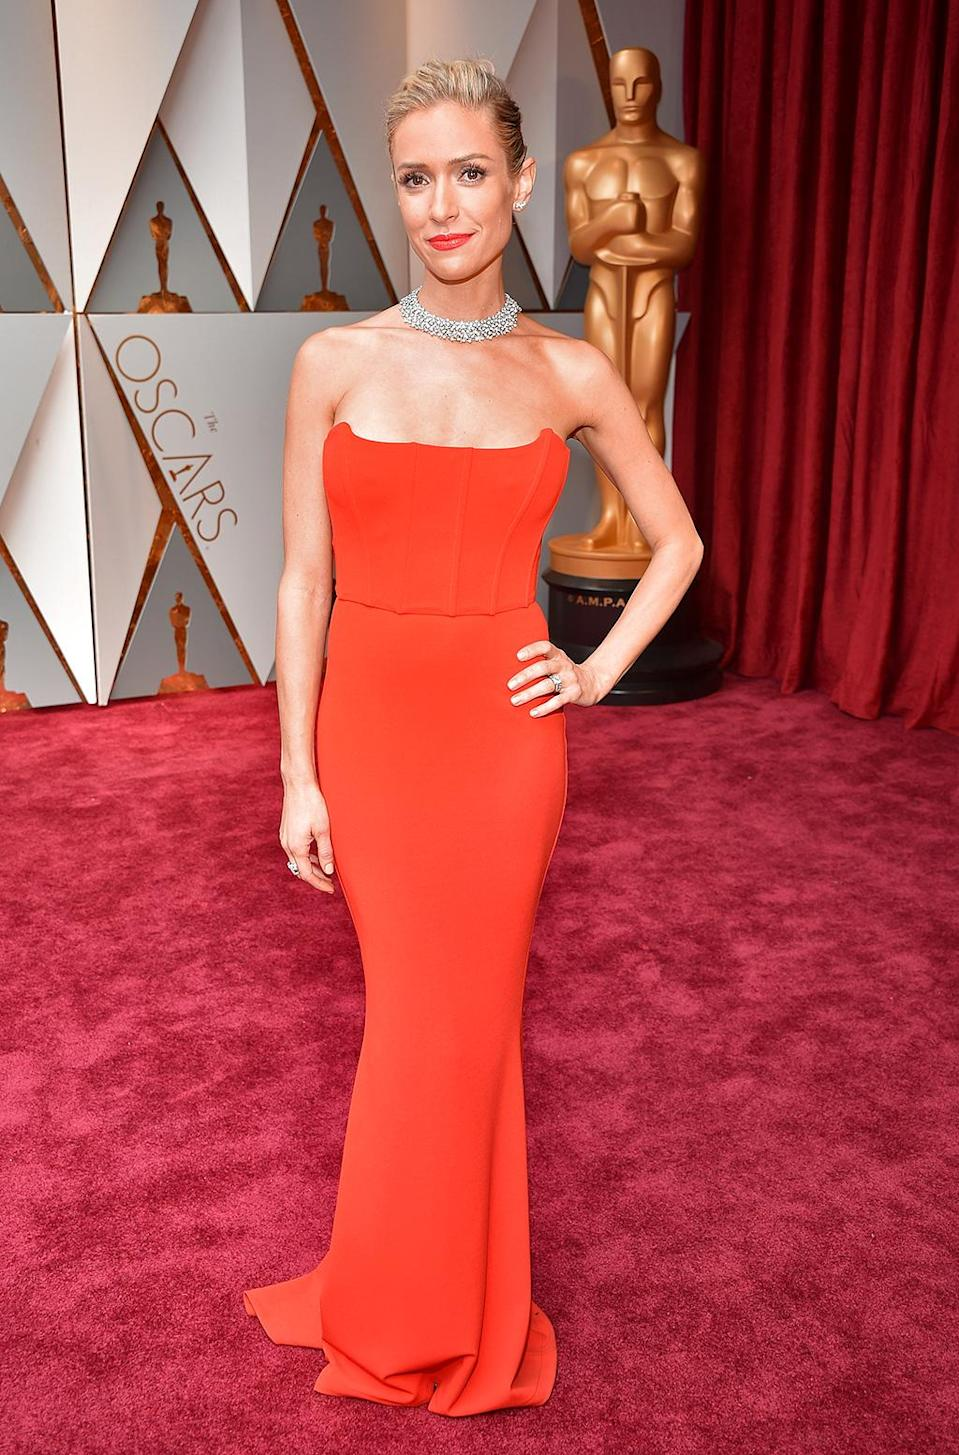 <p>TV personality Kristin Cavallari attends the 89th Annual Academy Awards at Hollywood & Highland Center on February 26, 2017 in Hollywood, California. (Photo by Kevin Mazur/Getty Images) </p>